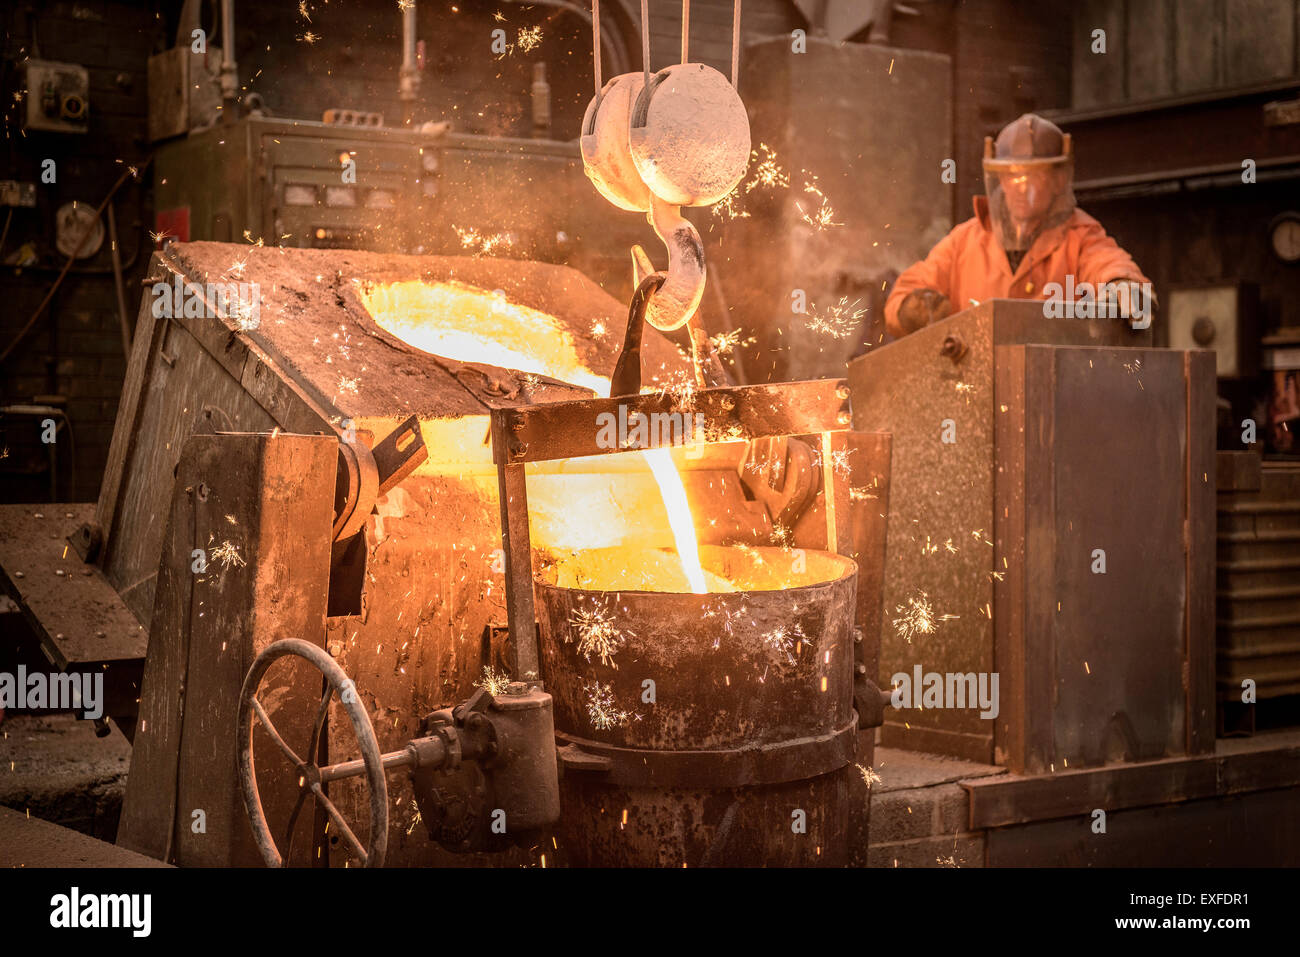 Worker pouring molten metal in foundry - Stock Image